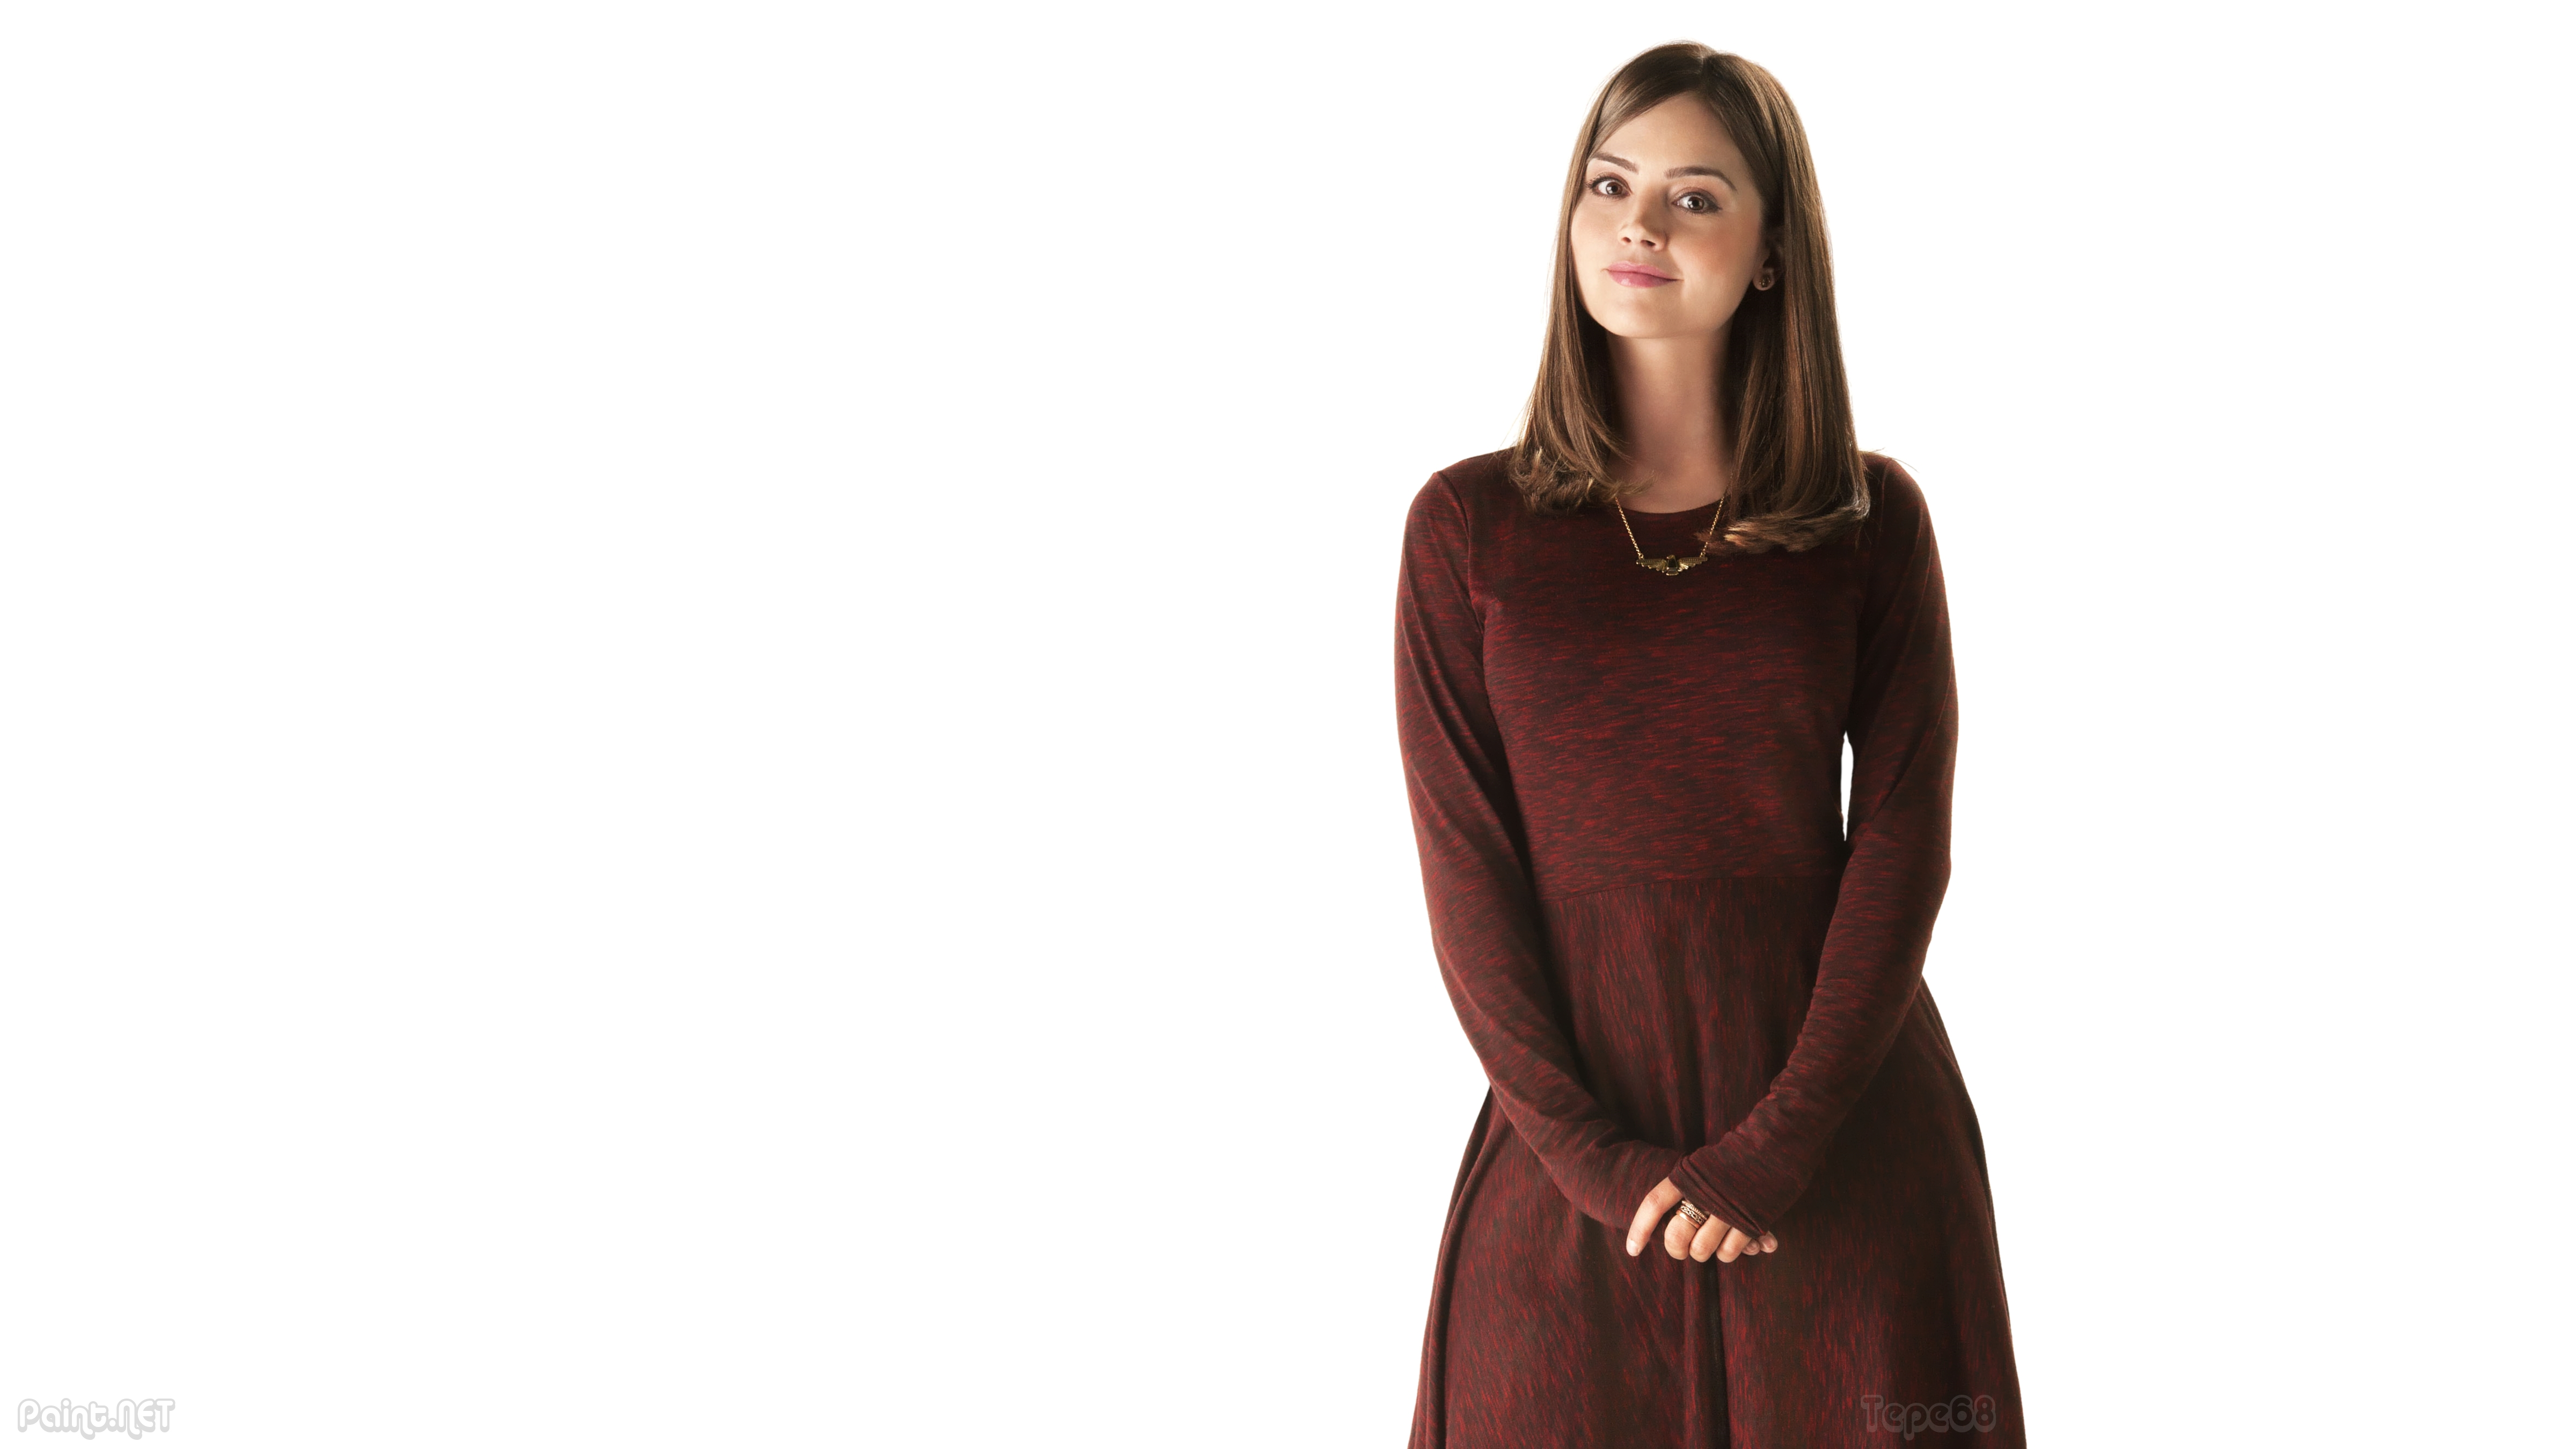 4800x2700 - Jenna-Louise Coleman Wallpapers 7